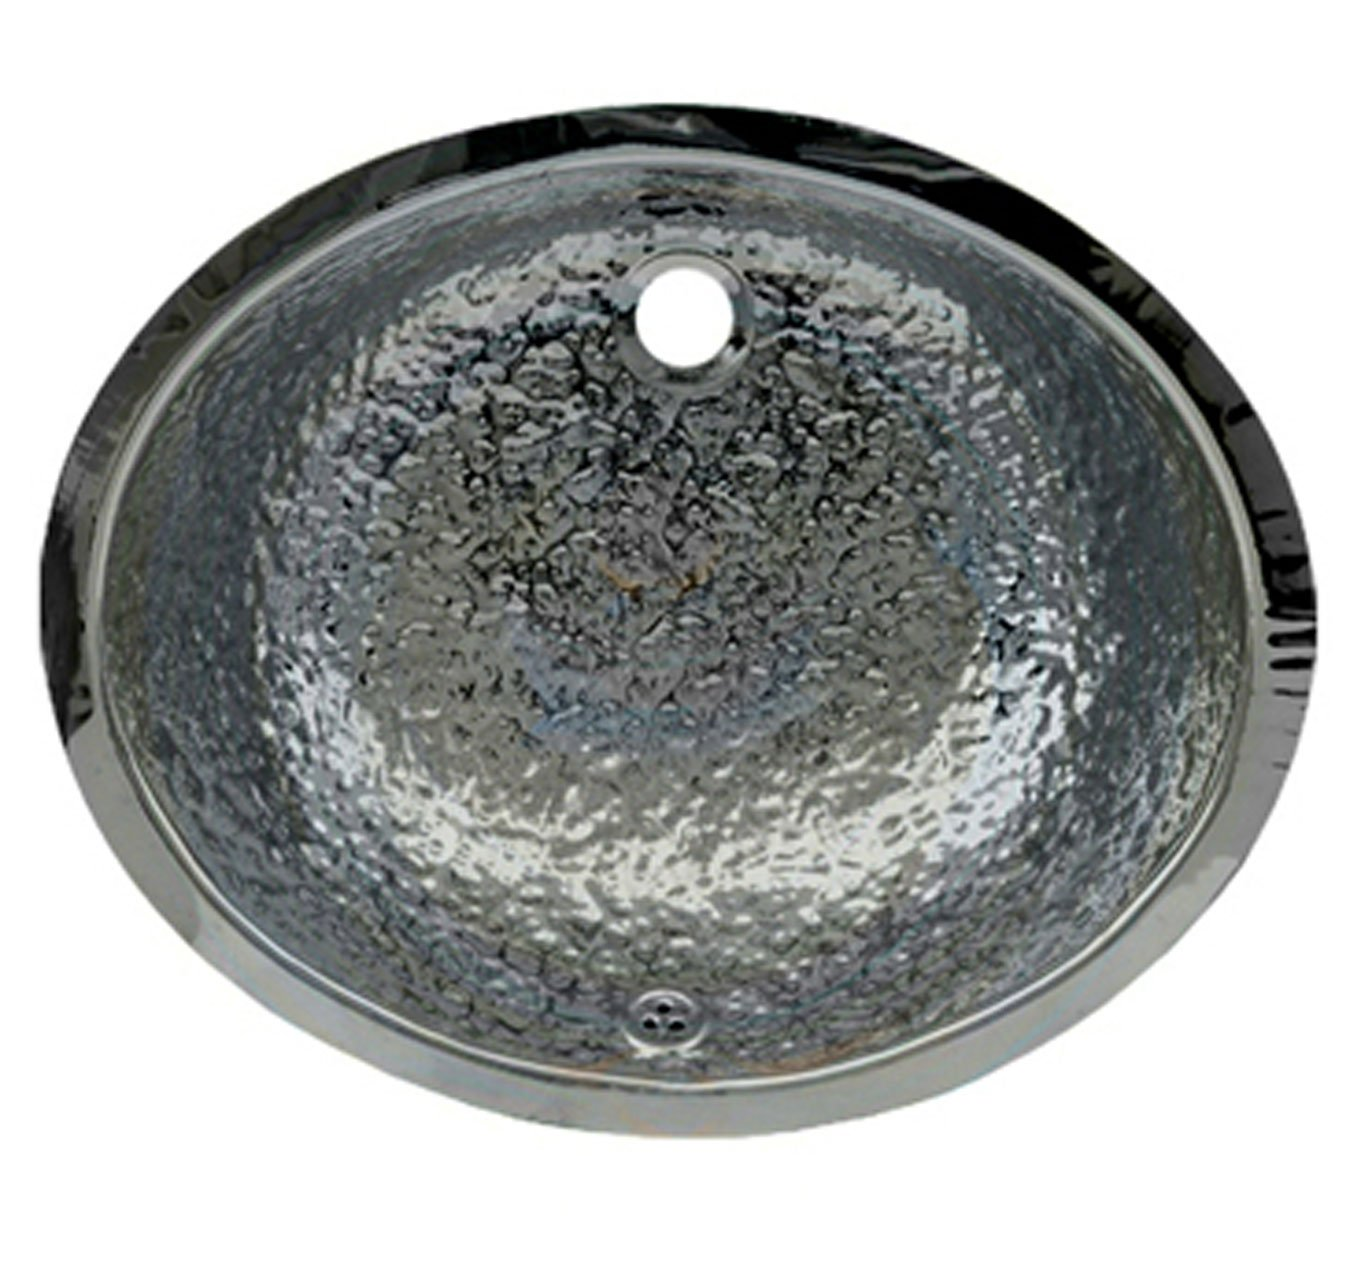 Whitehaus WH920ABB-POSS Oval 18 1 2-Inch Hammered Textured Undermount Basin with Overflow, Polished Stainless Steel